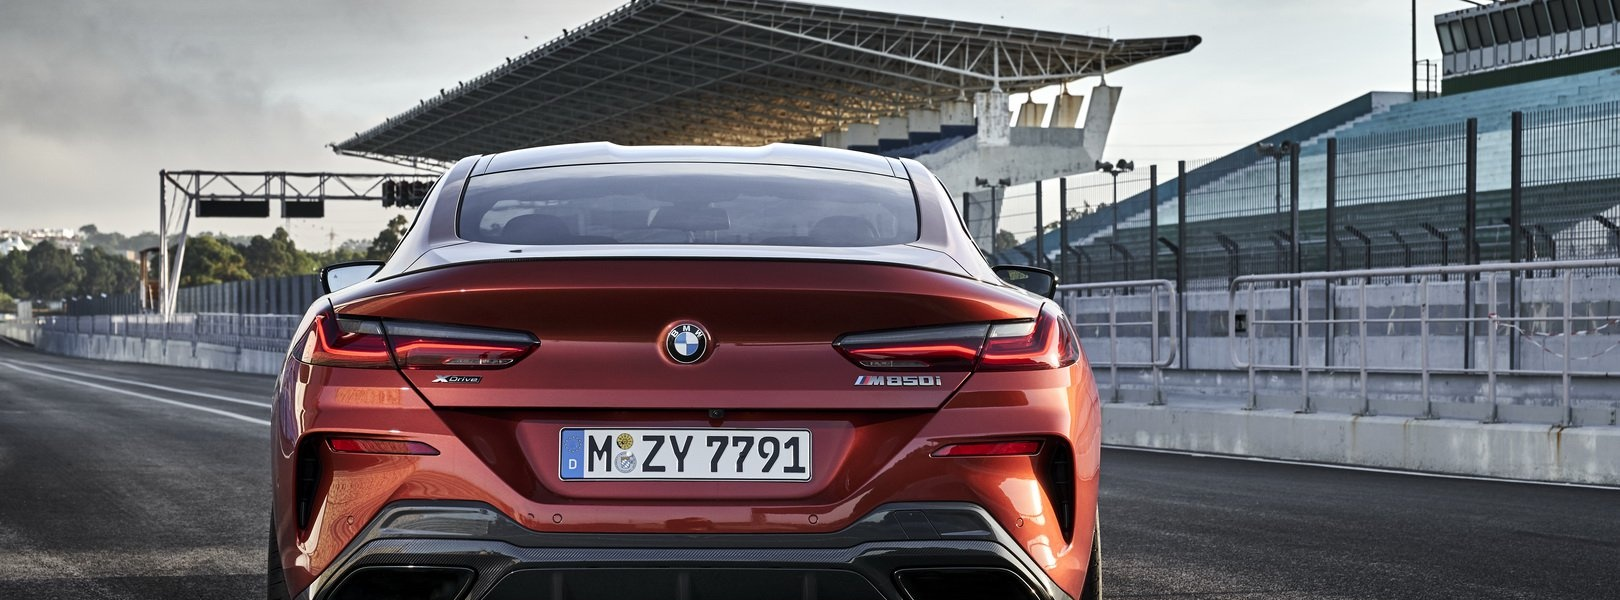 381cf409-2019-bmw-8-series-coupe-31.jpg